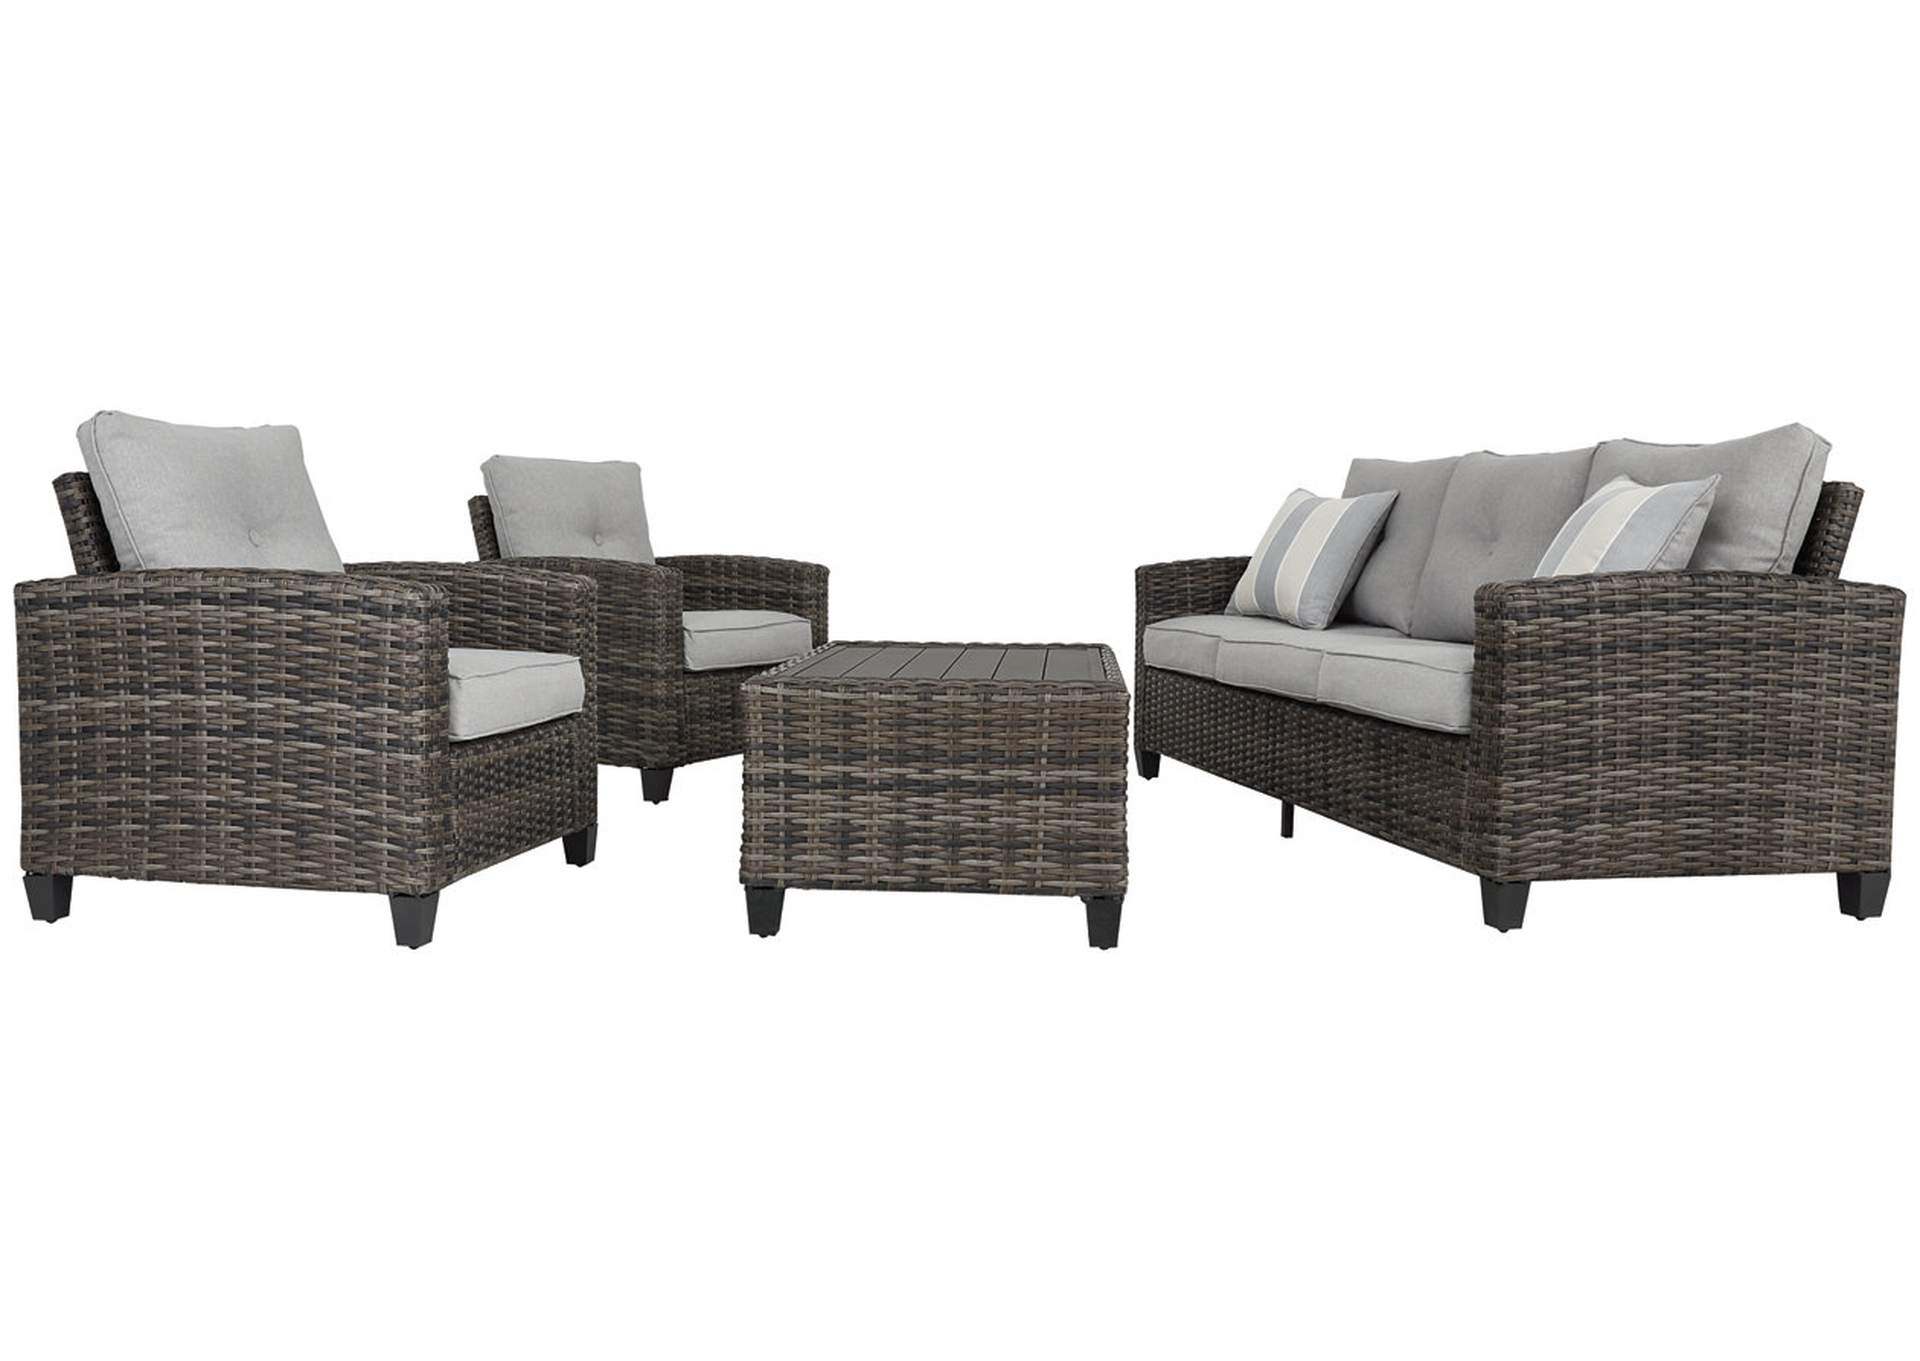 Cloverbrooke Gray 4-Piece Outdoor Conversation Set,Outdoor By Ashley